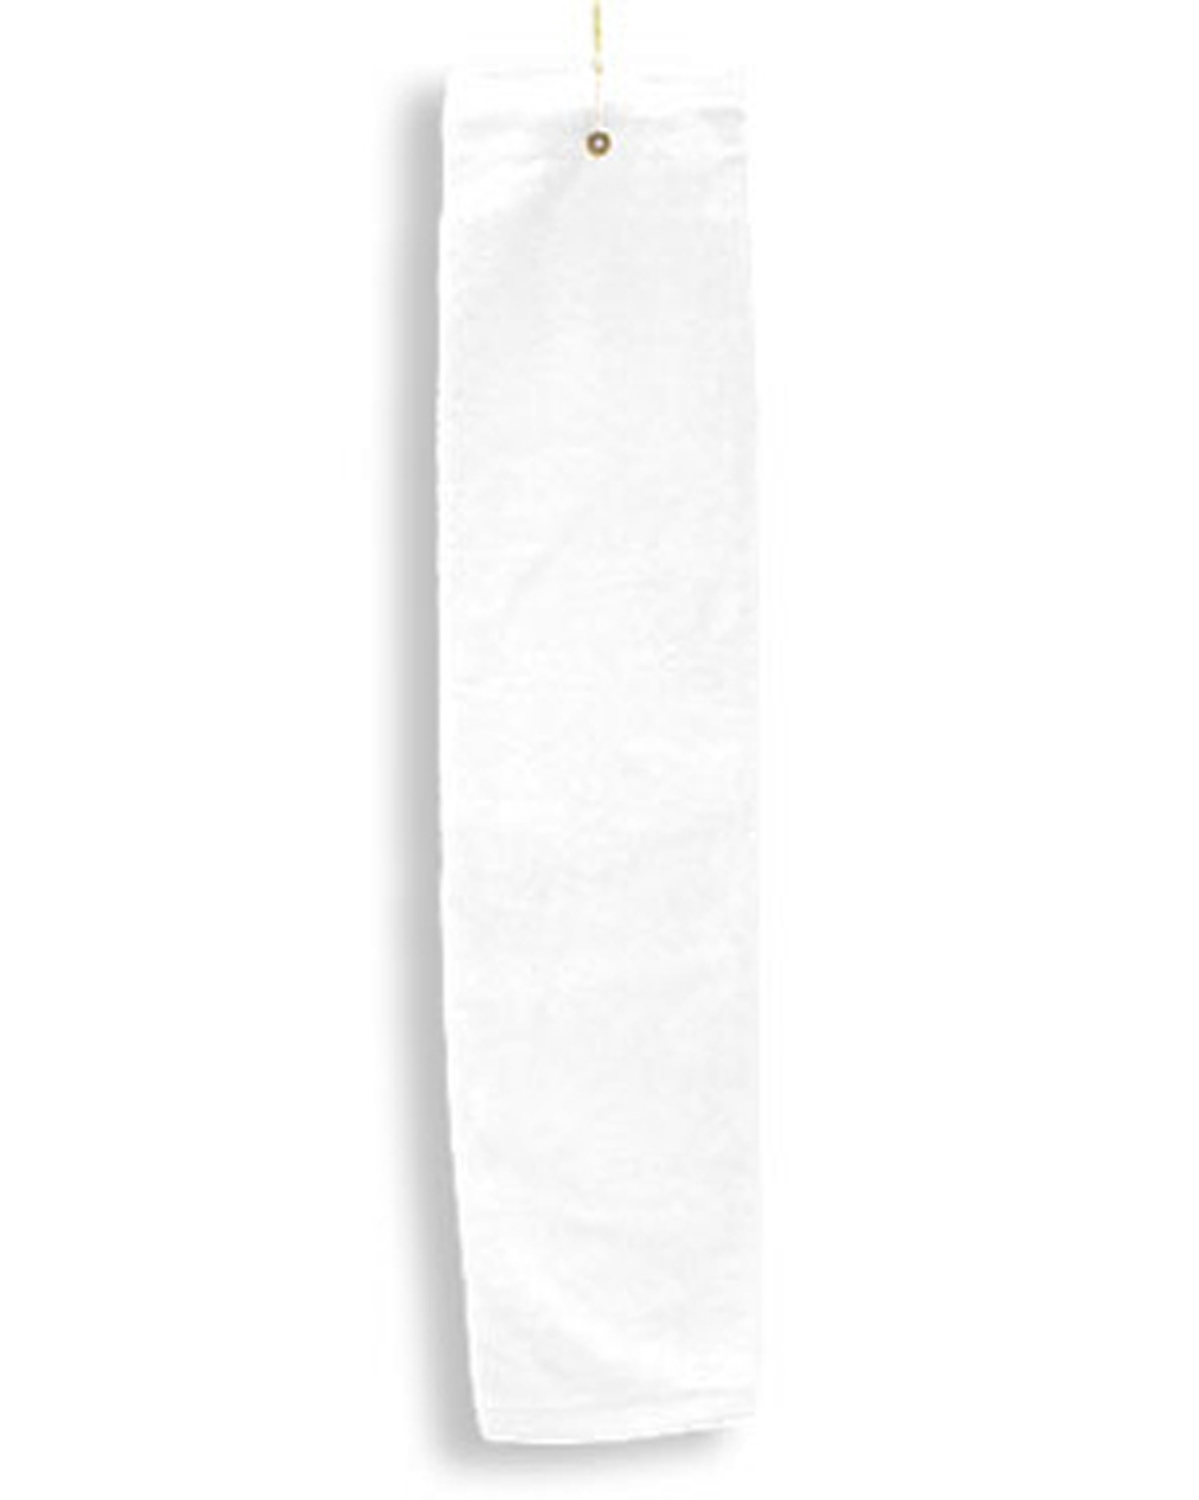 Deluxe Tri-Fold Hemmed Hand Towel With Center Grommet and Hook